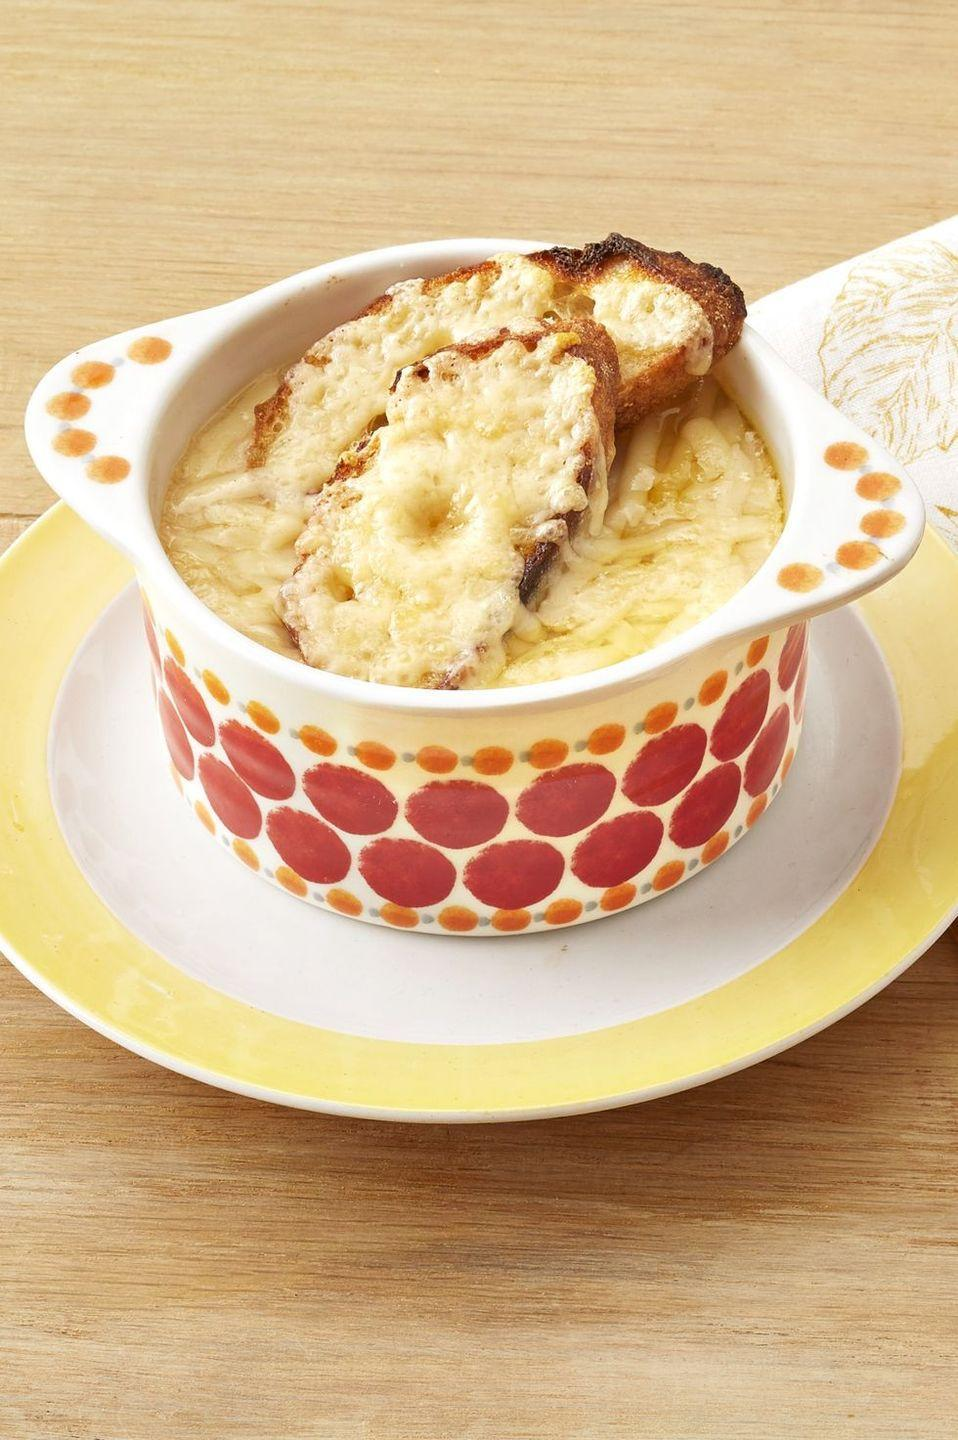 """<p>Make a bowl of cheesy French onion soup even heartier by adding potatoes to the mix.</p><p><strong><a href=""""https://www.thepioneerwoman.com/food-cooking/recipes/a32405569/french-onion-potato-soup-recipe/"""" rel=""""nofollow noopener"""" target=""""_blank"""" data-ylk=""""slk:Get the recipe."""" class=""""link rapid-noclick-resp"""">Get the recipe.</a></strong> </p>"""